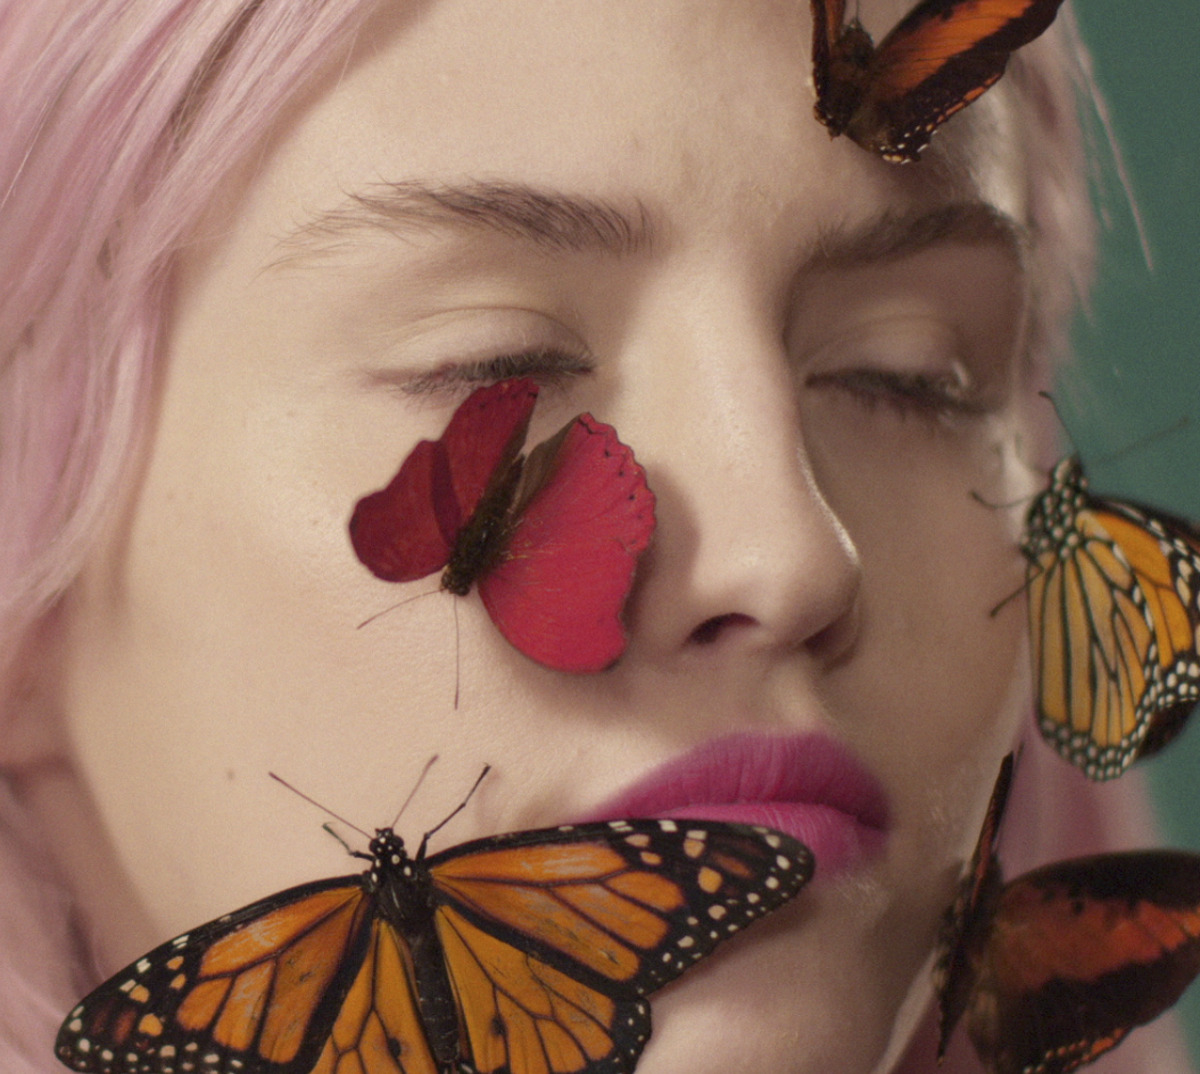 Ryan McGinley's 'Beautiful Rebels' campaign for Edun